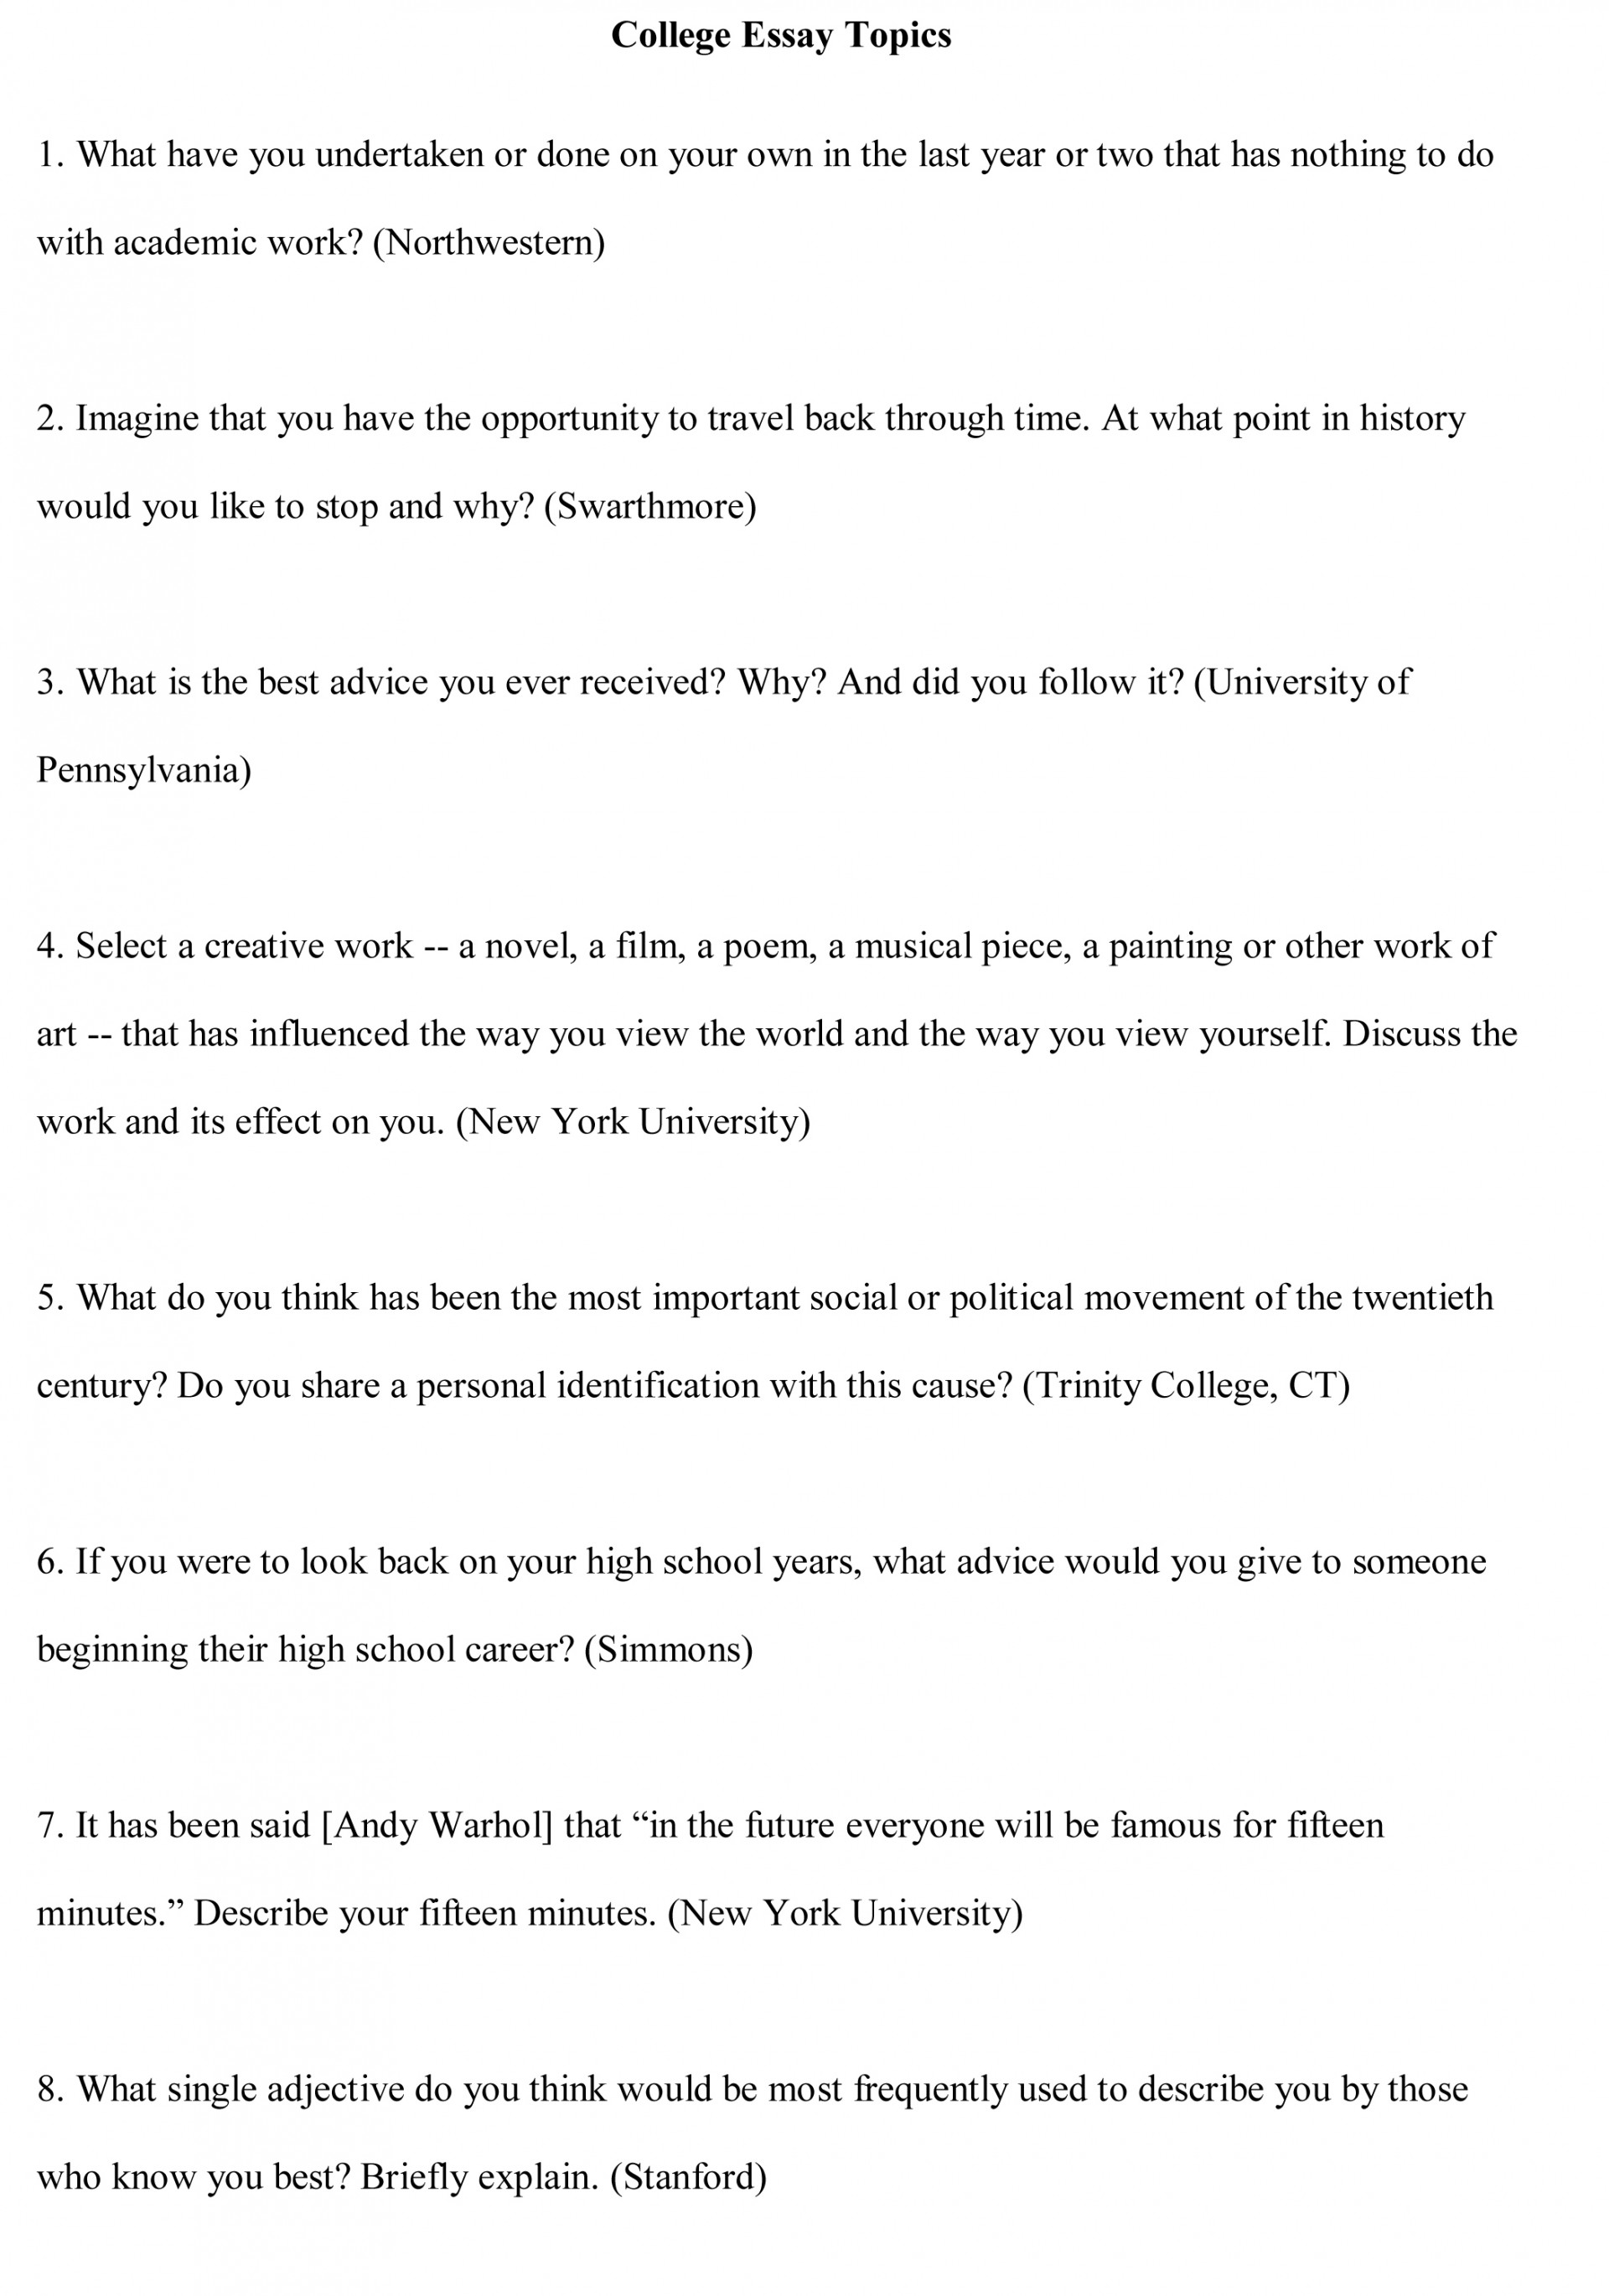 018 Essay Example College Topics Free Sample1 Writing Archaicawful Jobs Uk In Kenya 1920